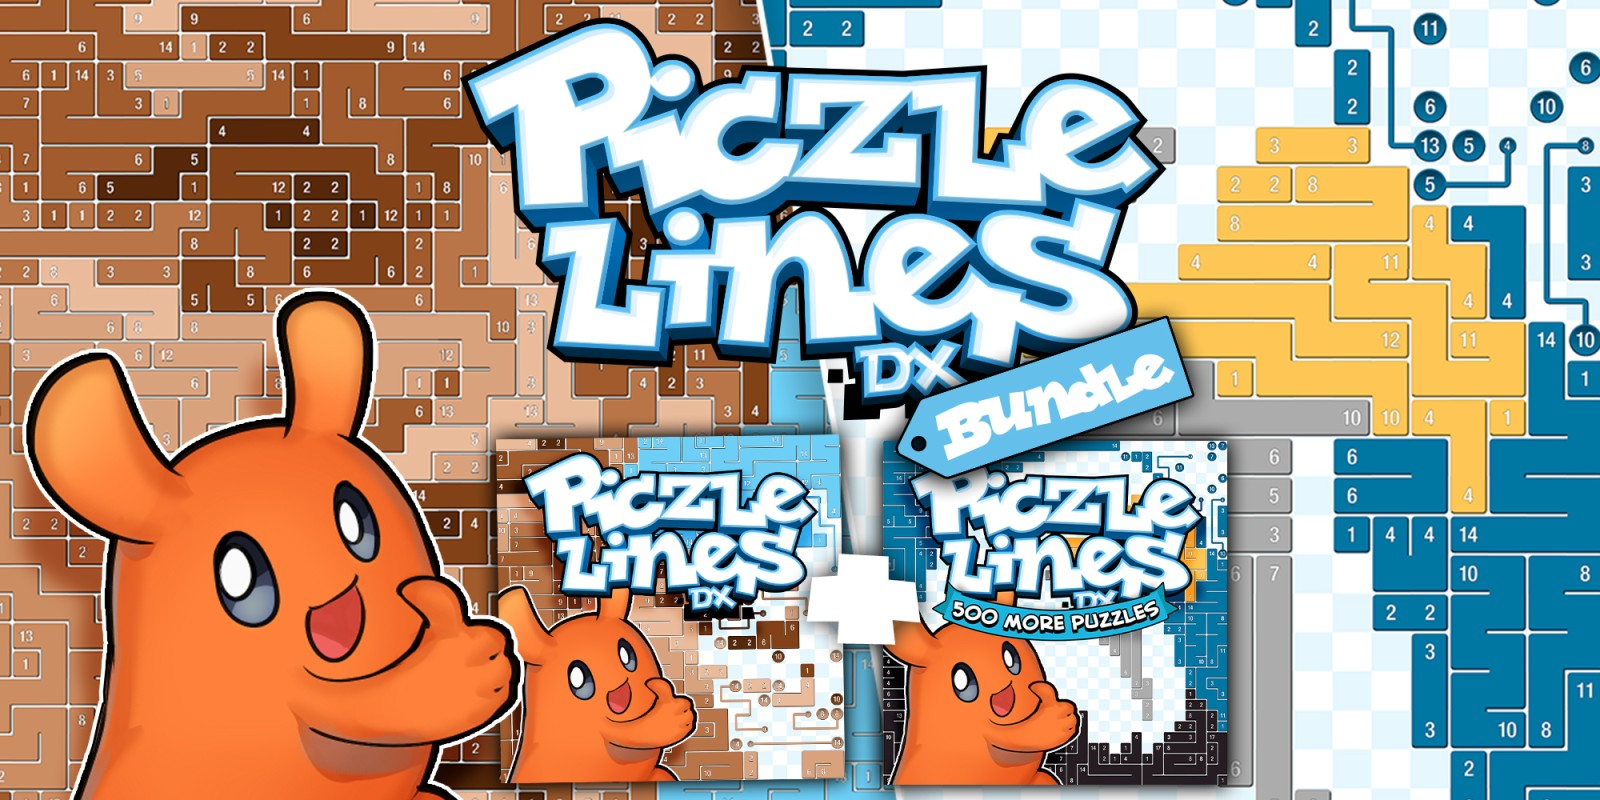 Piczle Lines DX Bundle